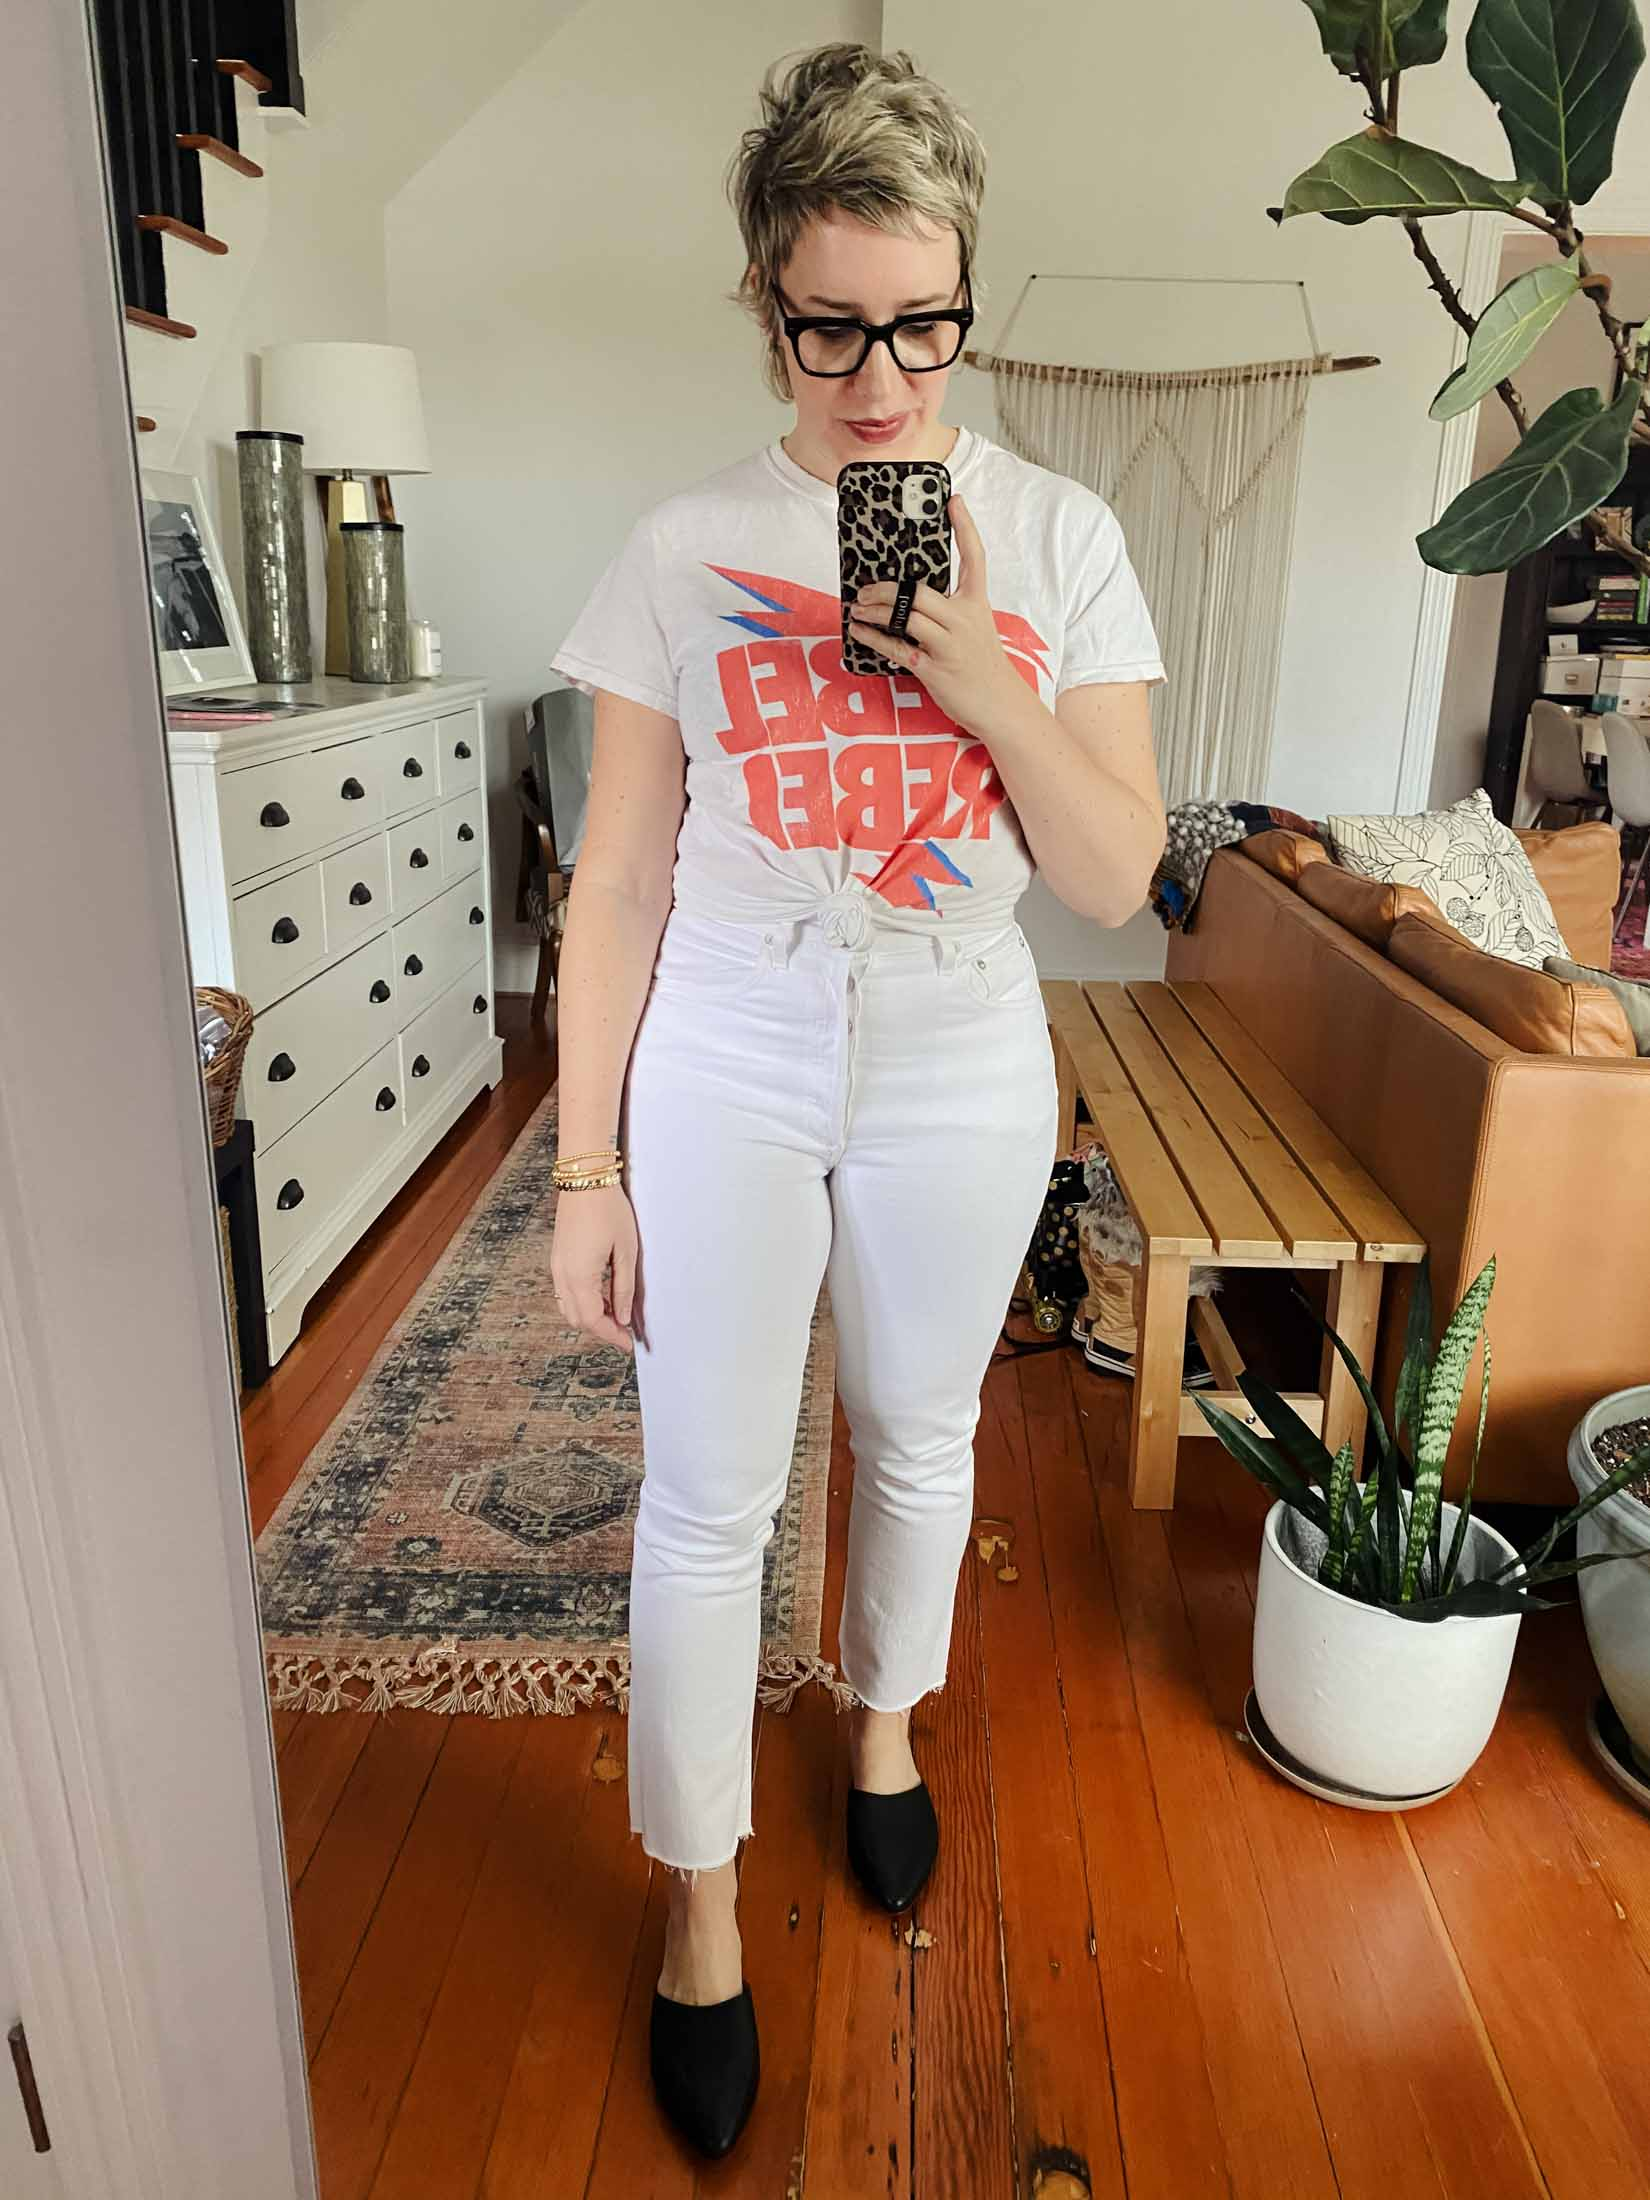 Black tees w/ white graphics are some of my most-worn. Faded options are great for styling wi/ just about anything. Colorful tees are awesome to add some pop to solid pieces.